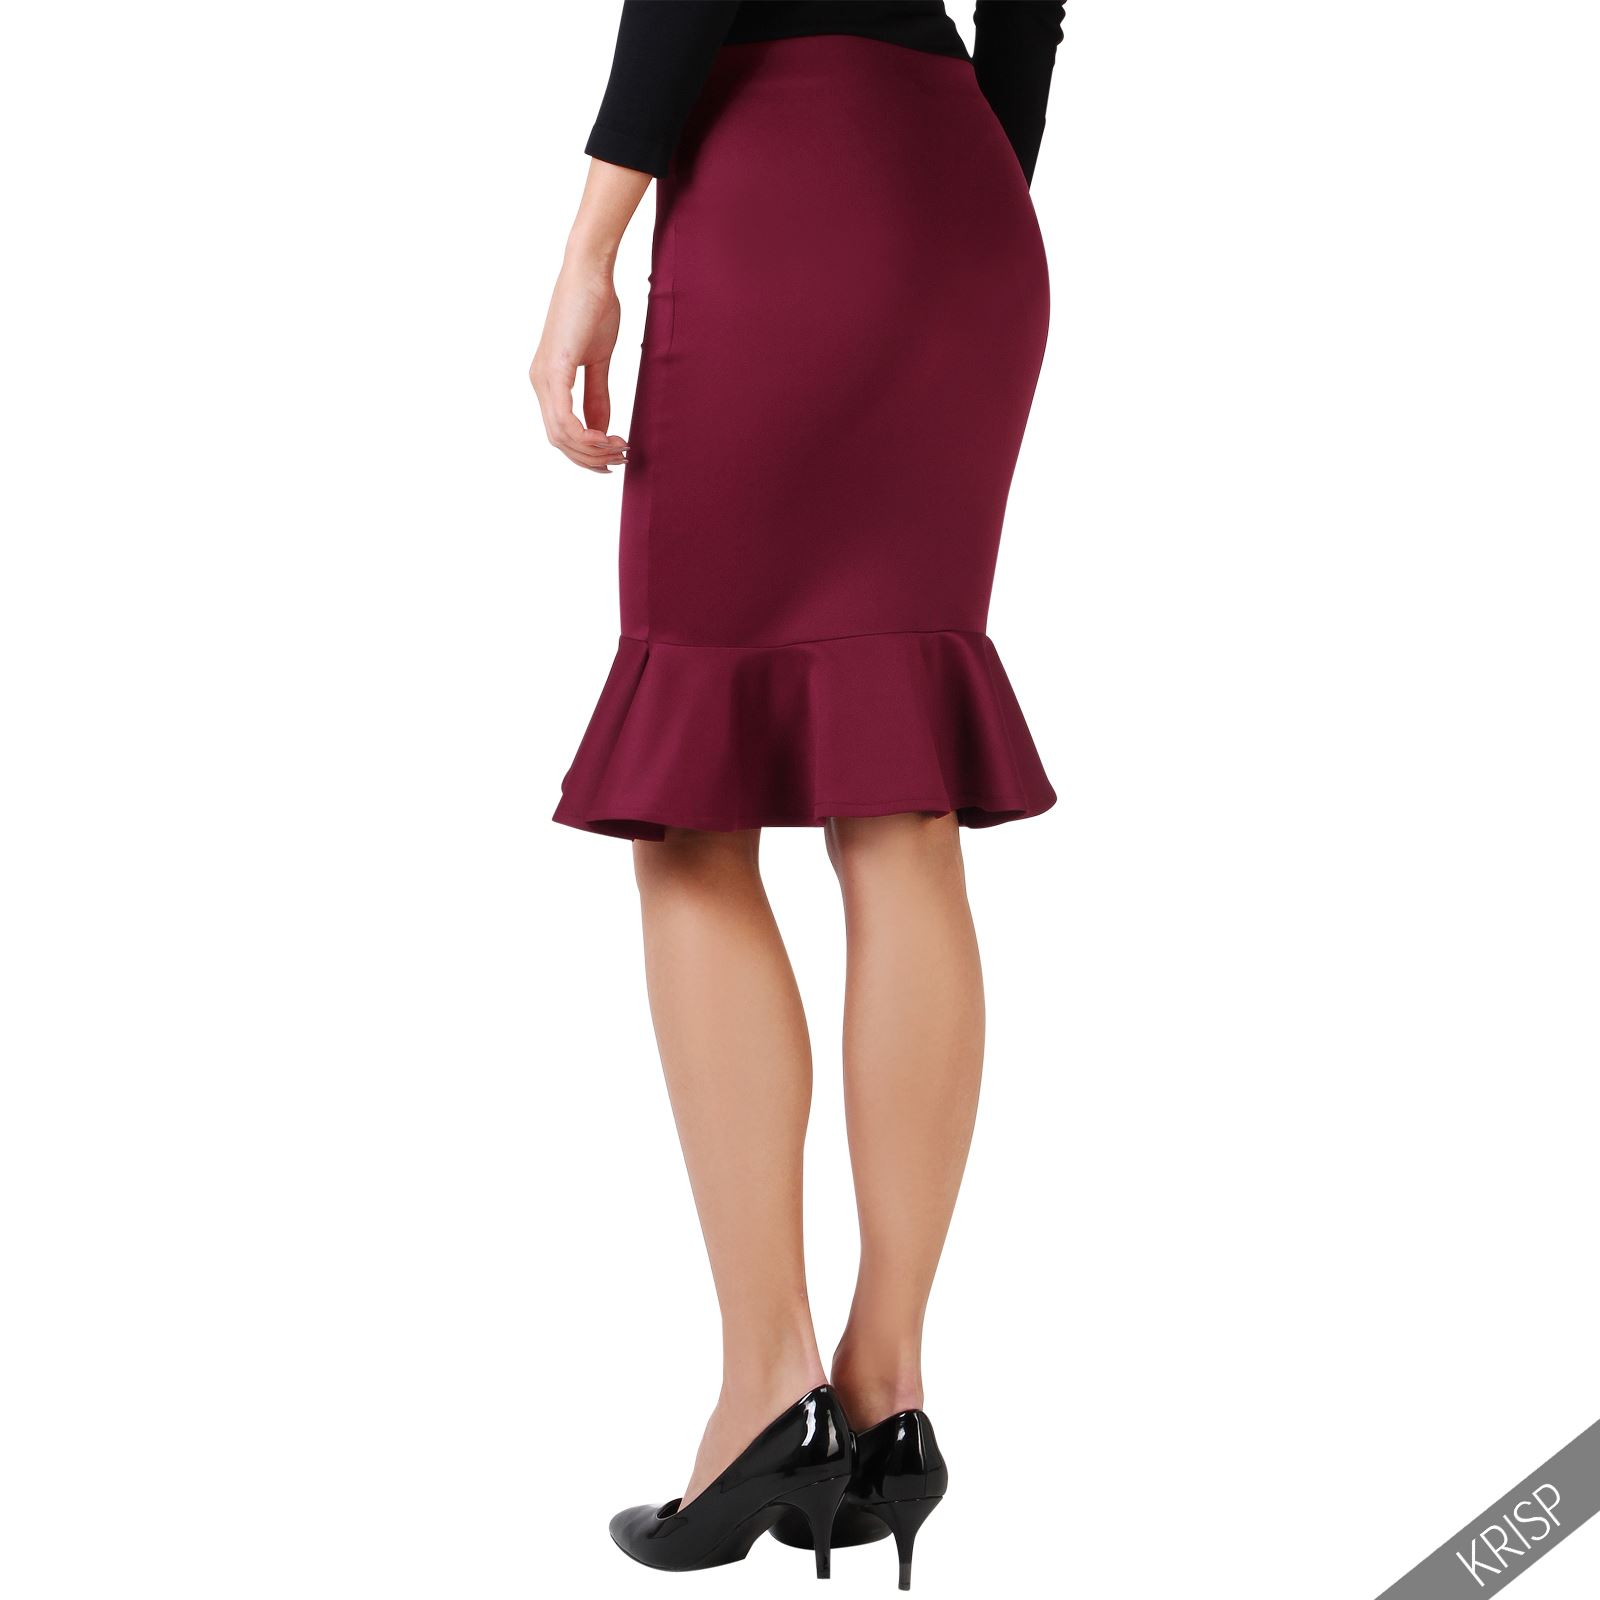 Women's %color %size Pencil Skirts: An Iconic Classic That Never Goes Out of Style